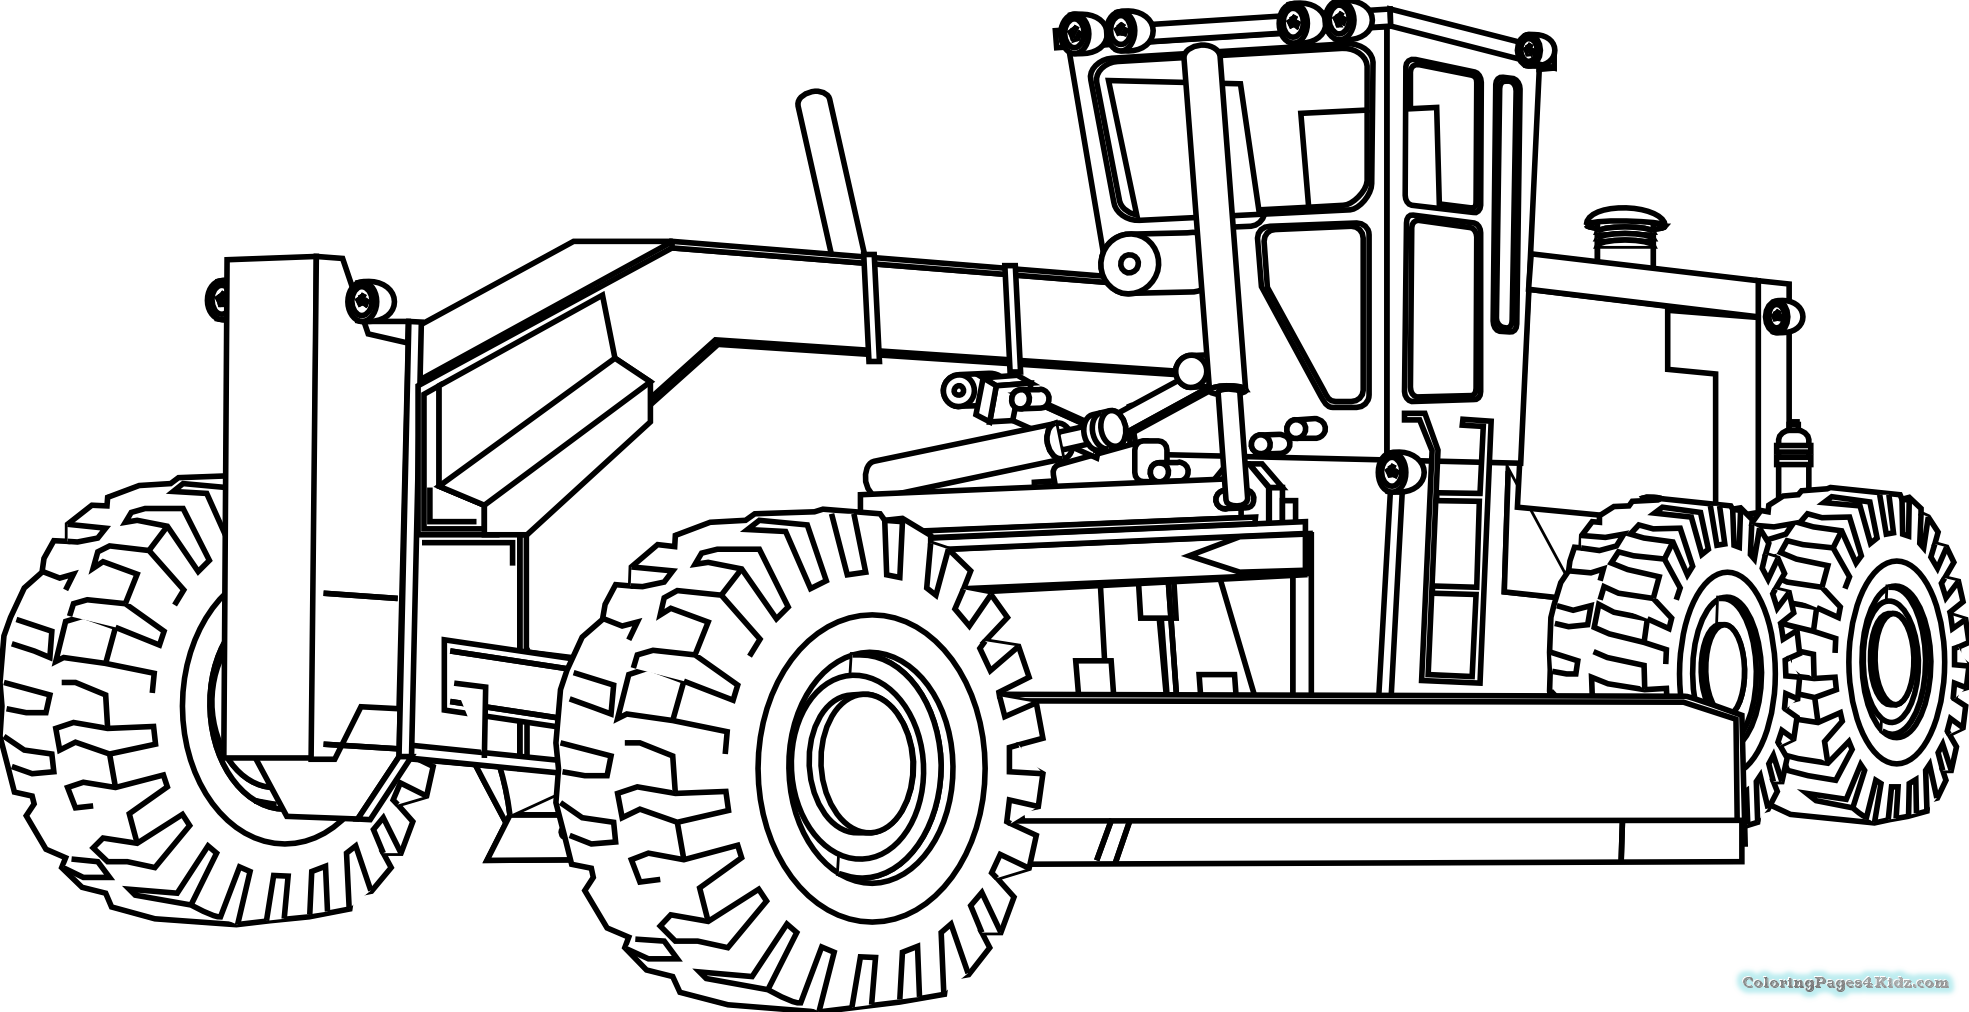 tractor coloring sheets fired up free tractor coloring tractors tractor parts sheets coloring tractor